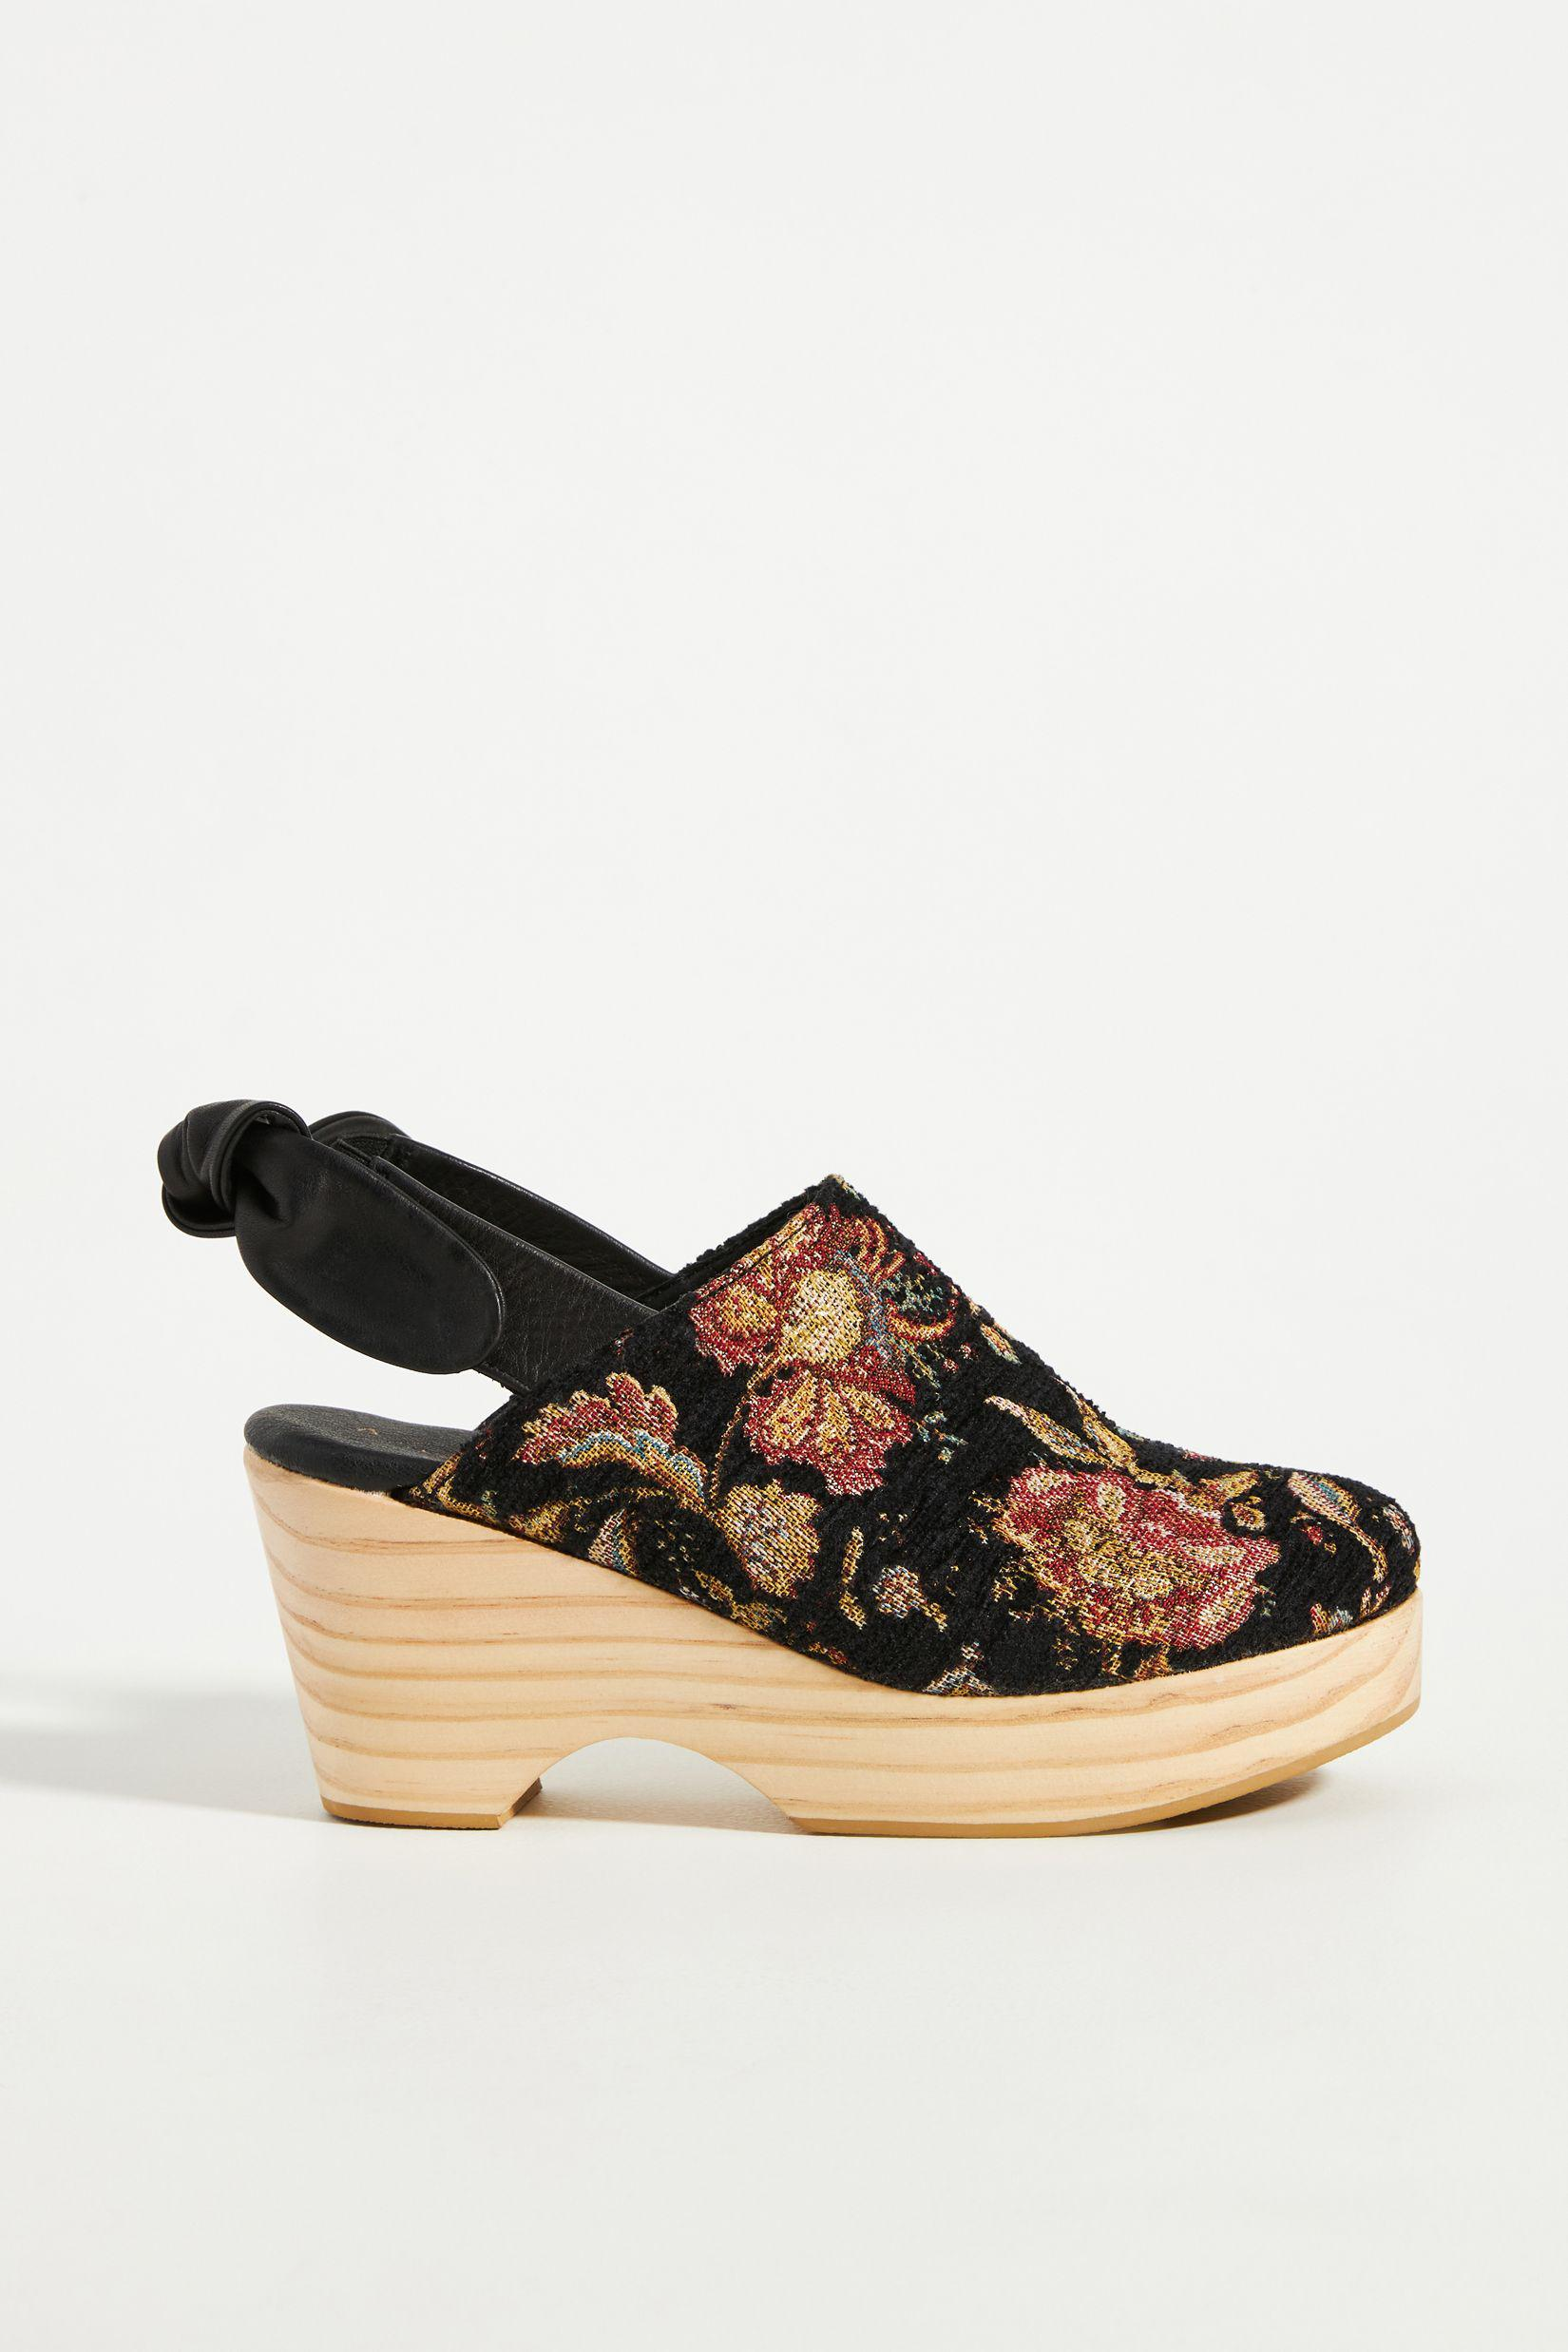 Floral Tapestry Clogs